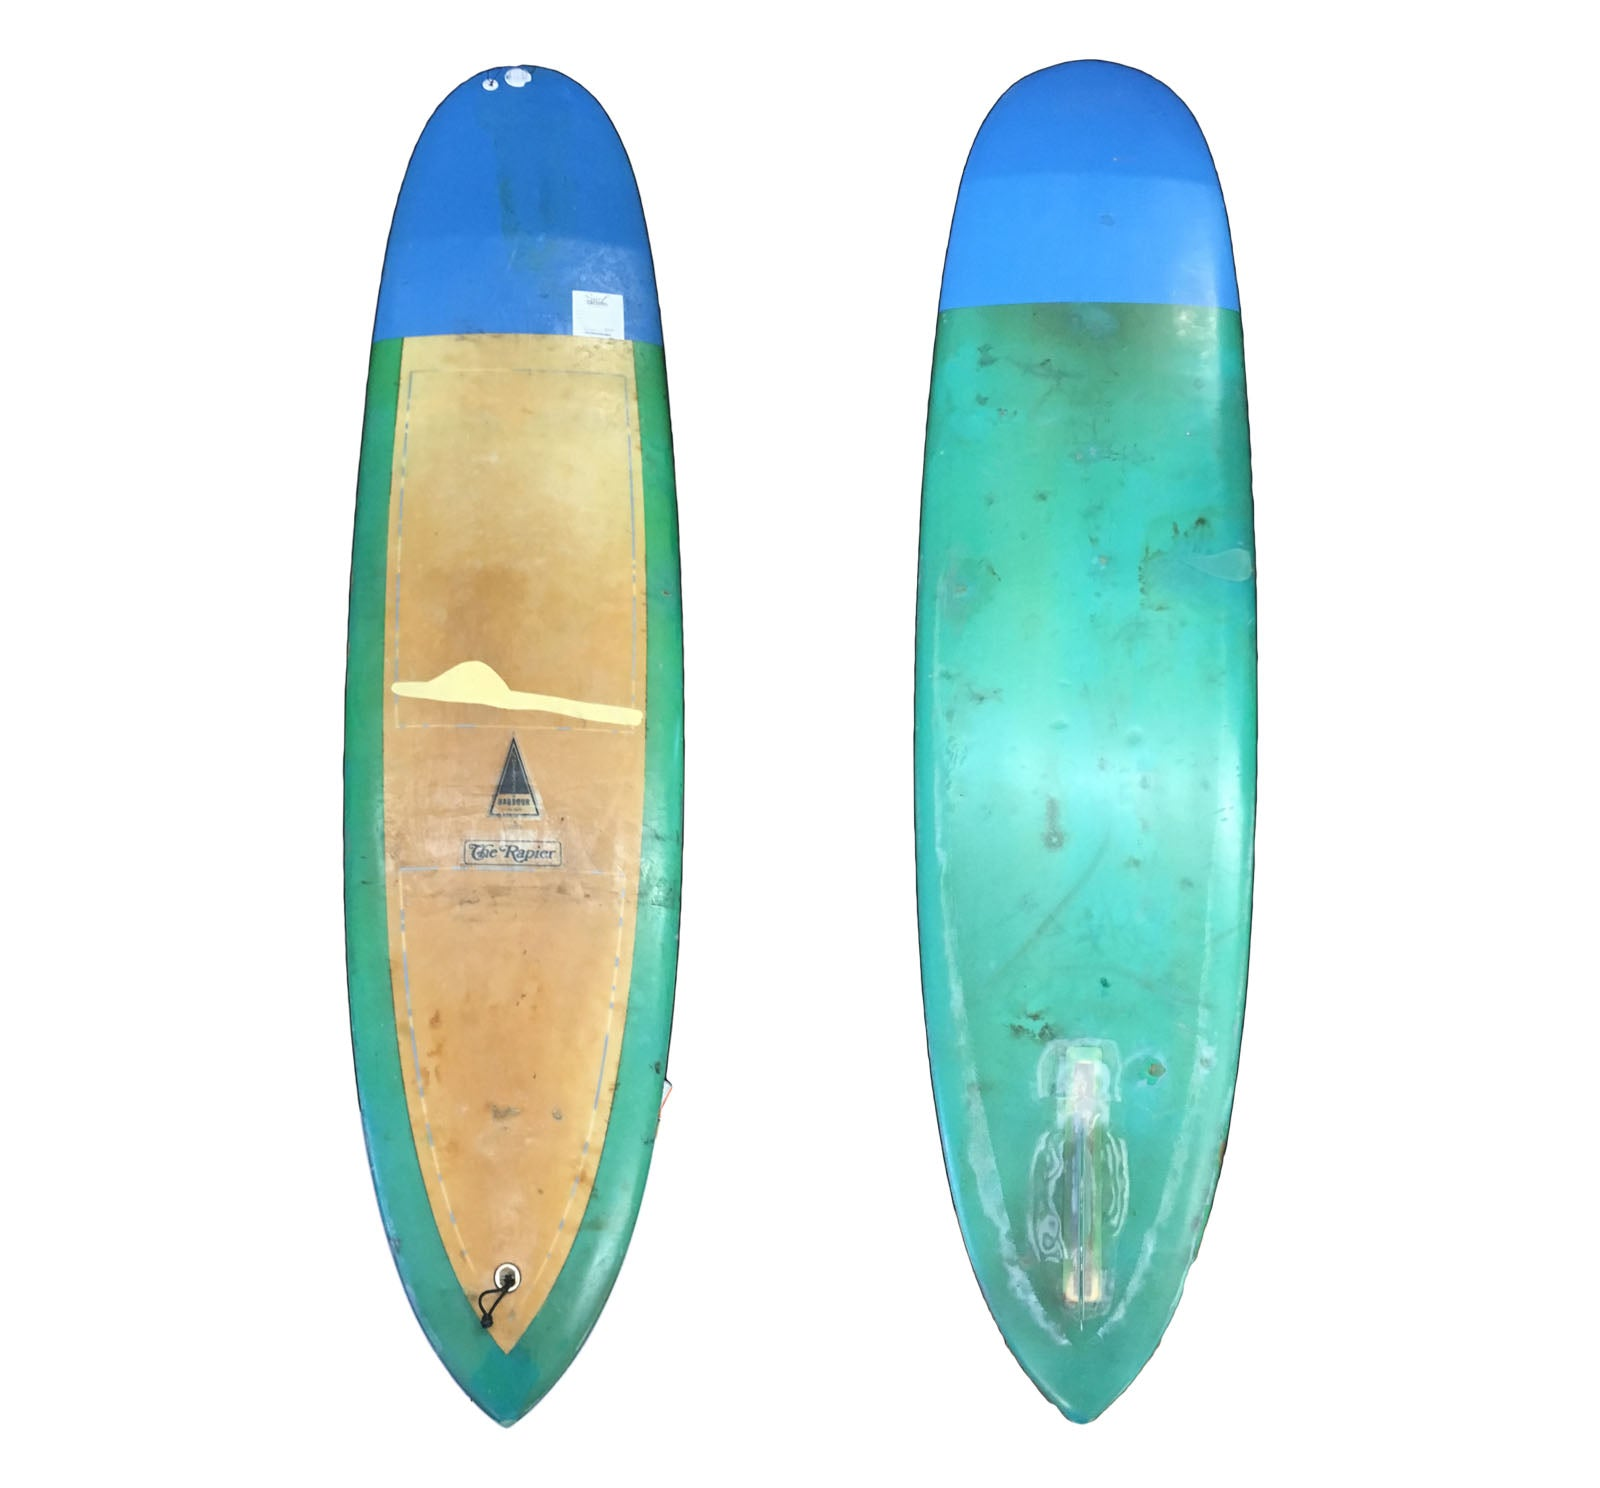 Harbour The Rapier 8'10 Collector Surfboard